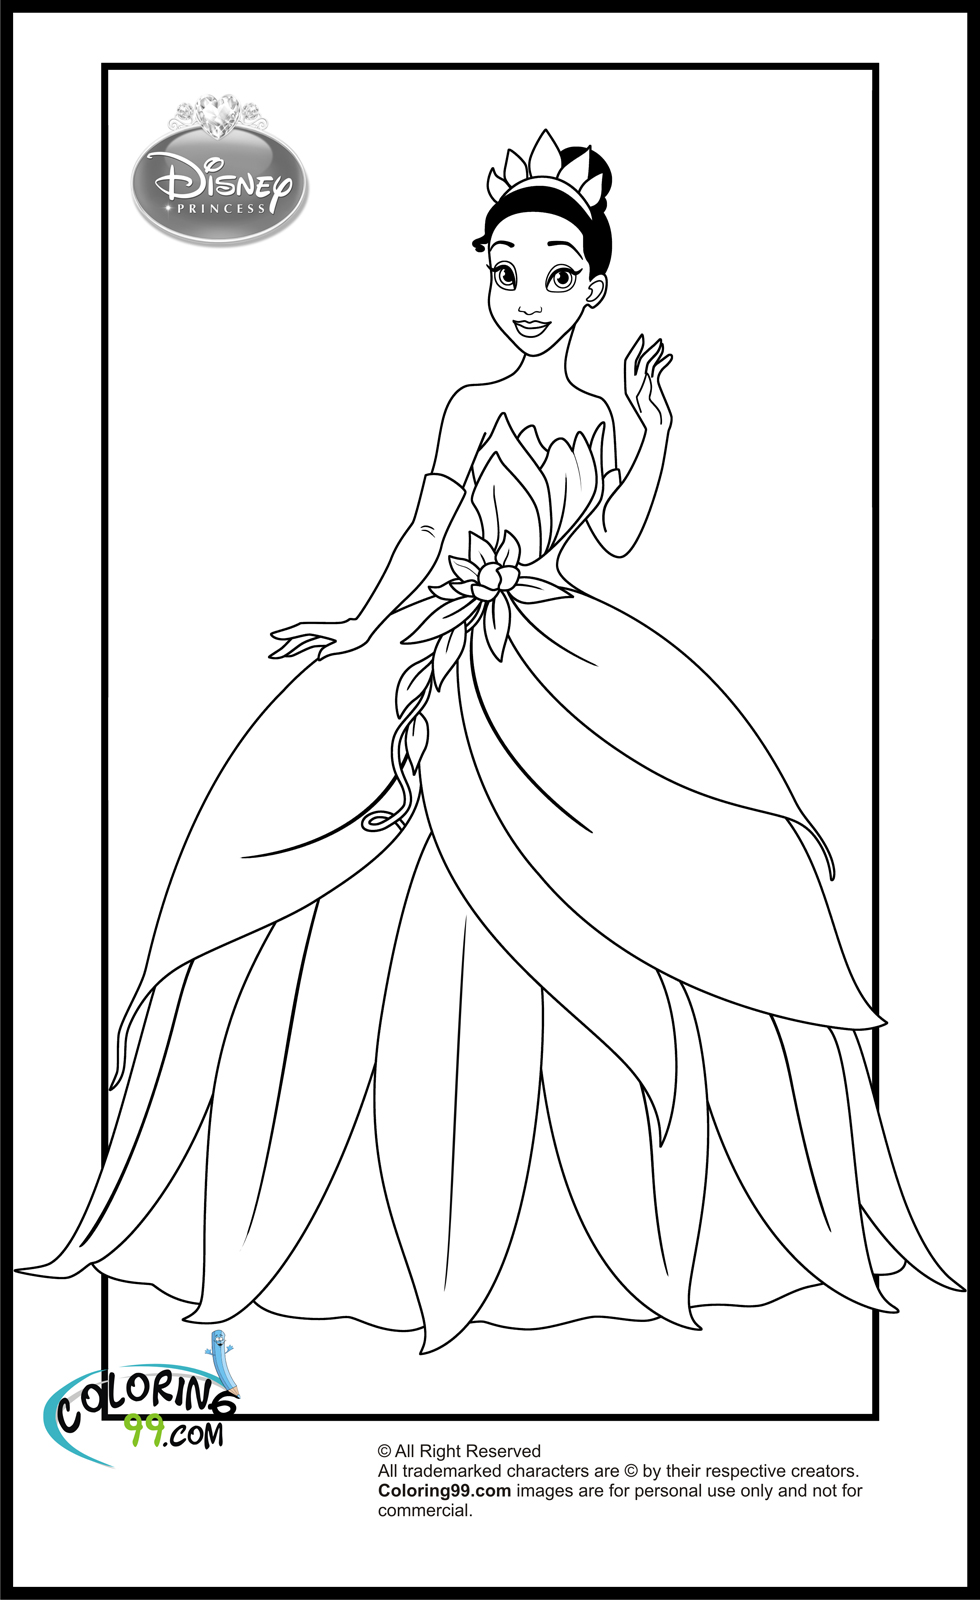 disney princess coloring worksheets disney princess coloring pages minister coloring worksheets coloring princess disney